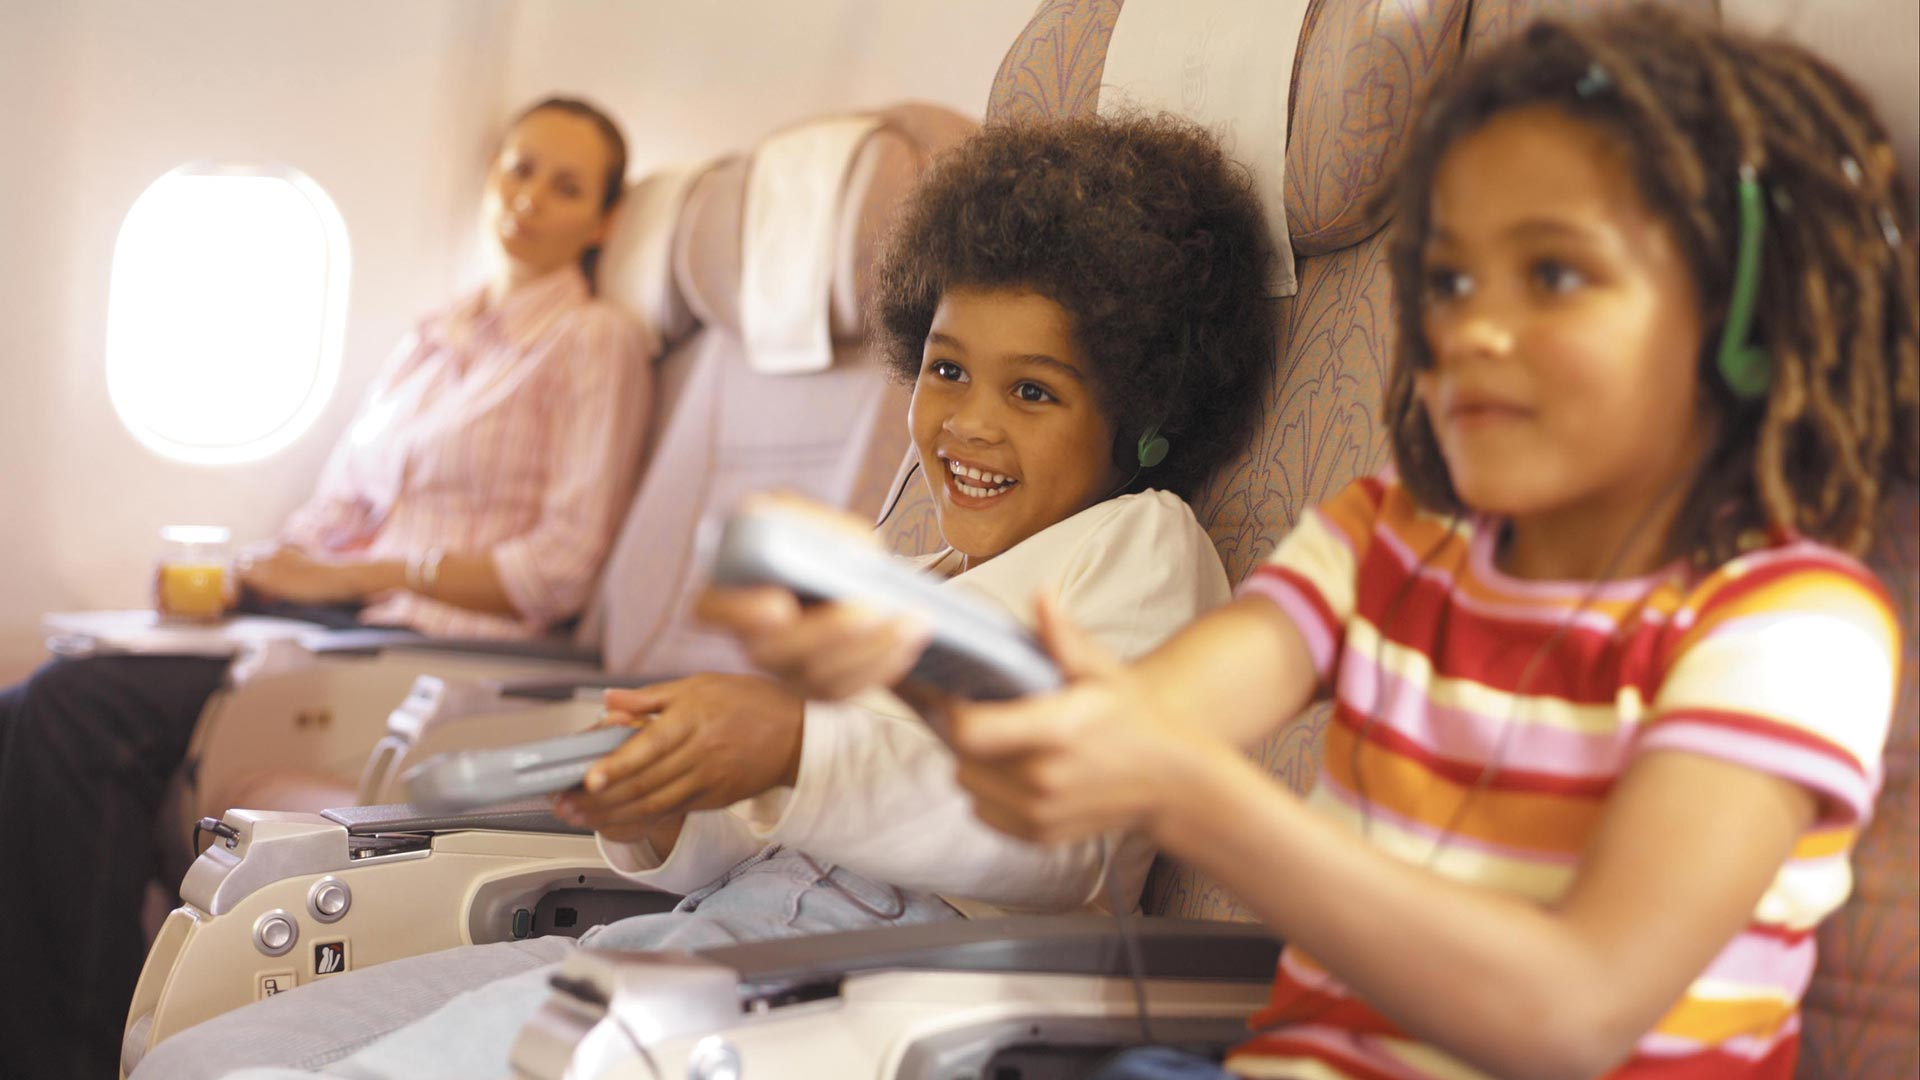 Two Kids Playing Games on Airplane